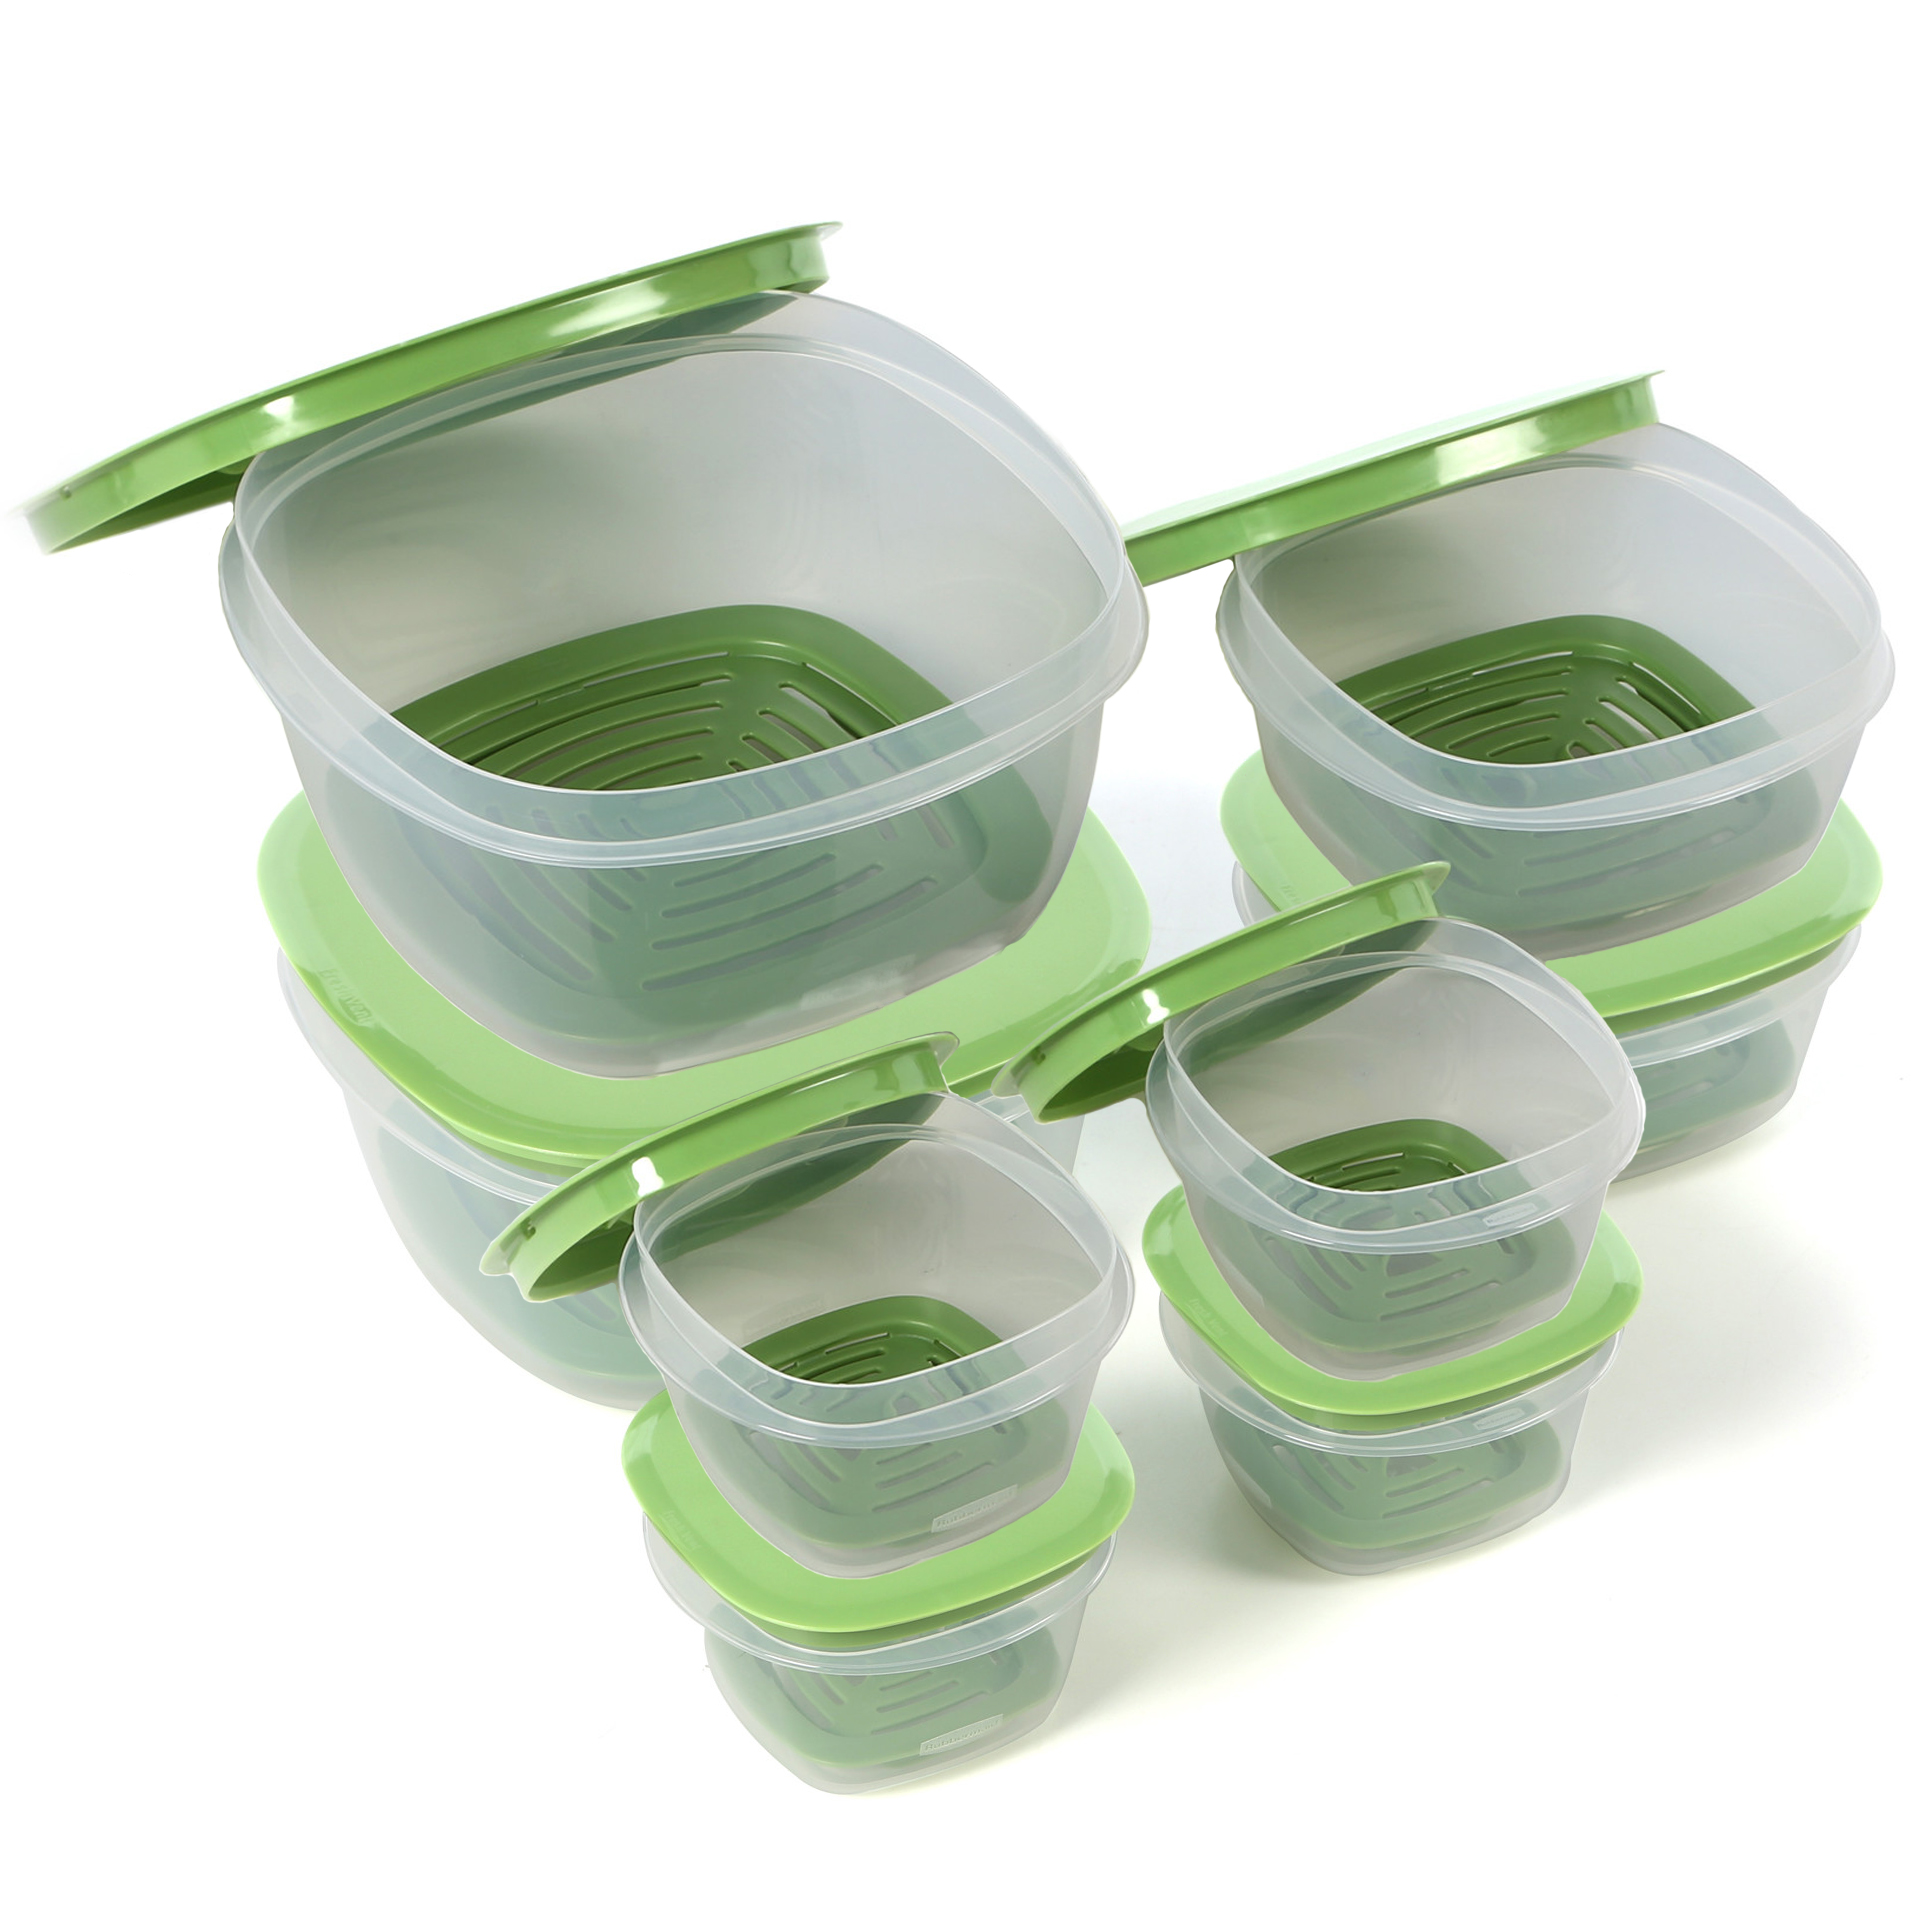 Rubbermaid 7j93 Produce Saver Square Food Storage Containers